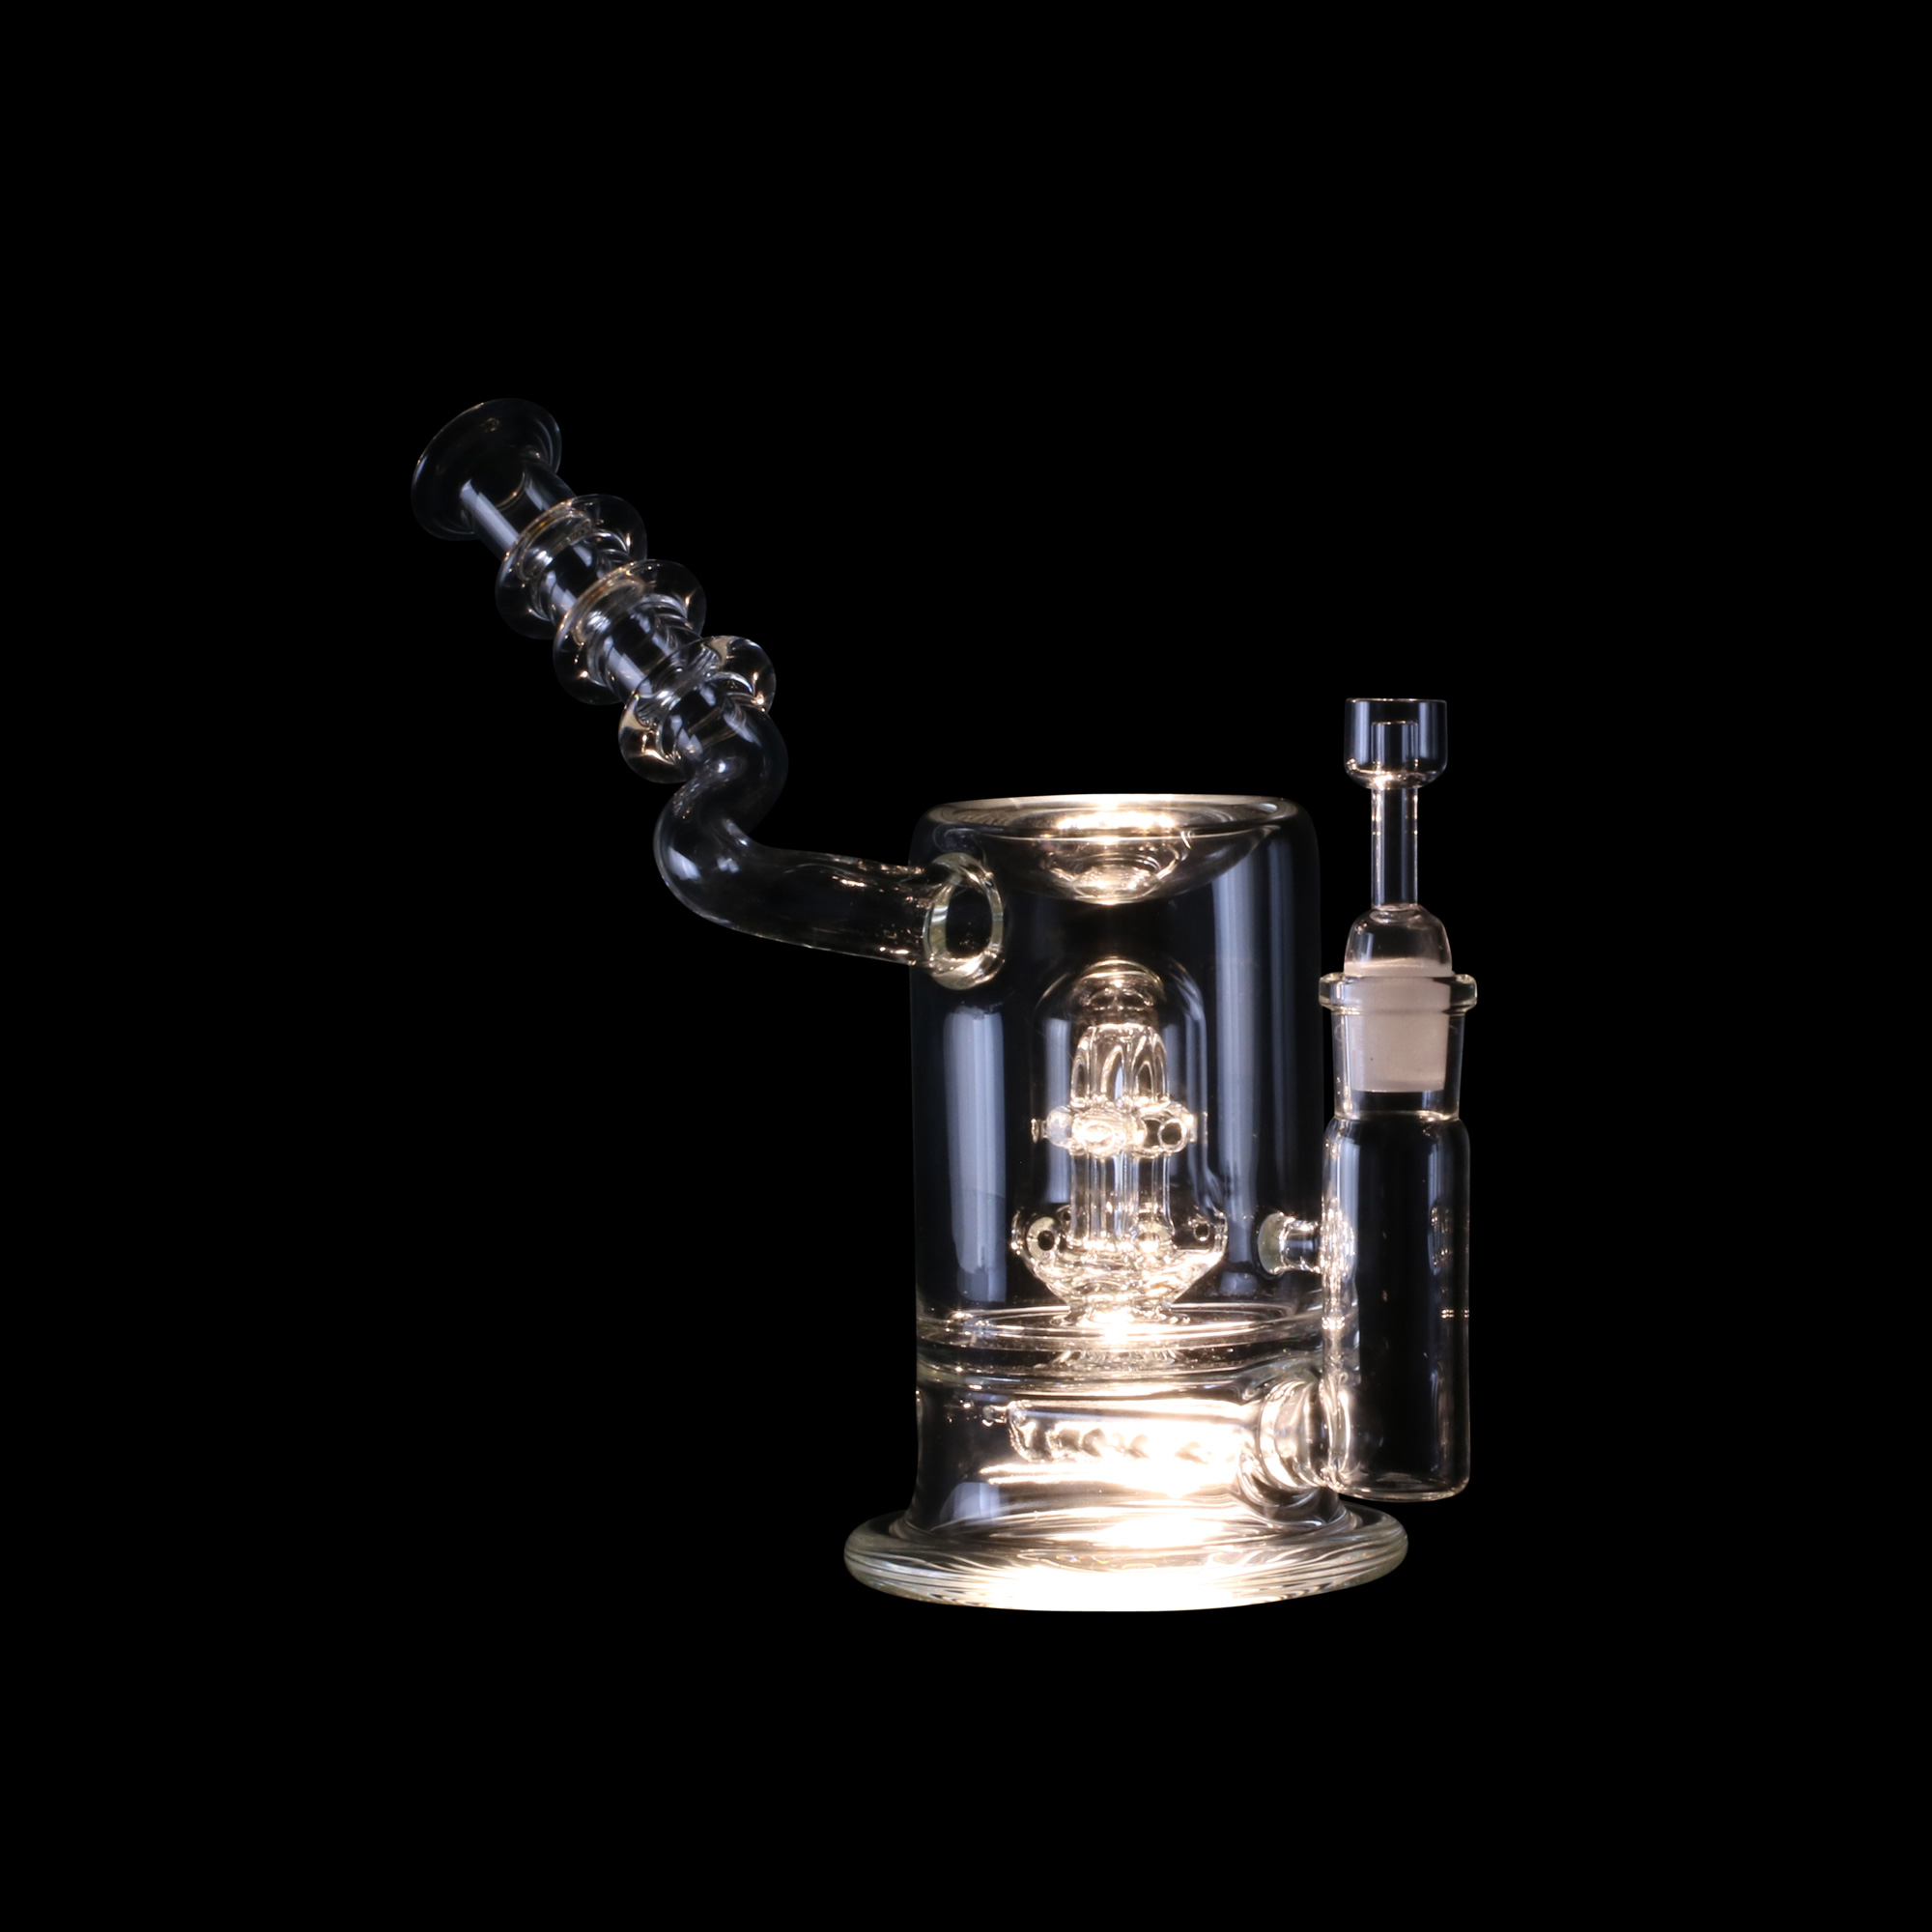 E Nail Glass Water Pipe featuring Reynolds Percolator